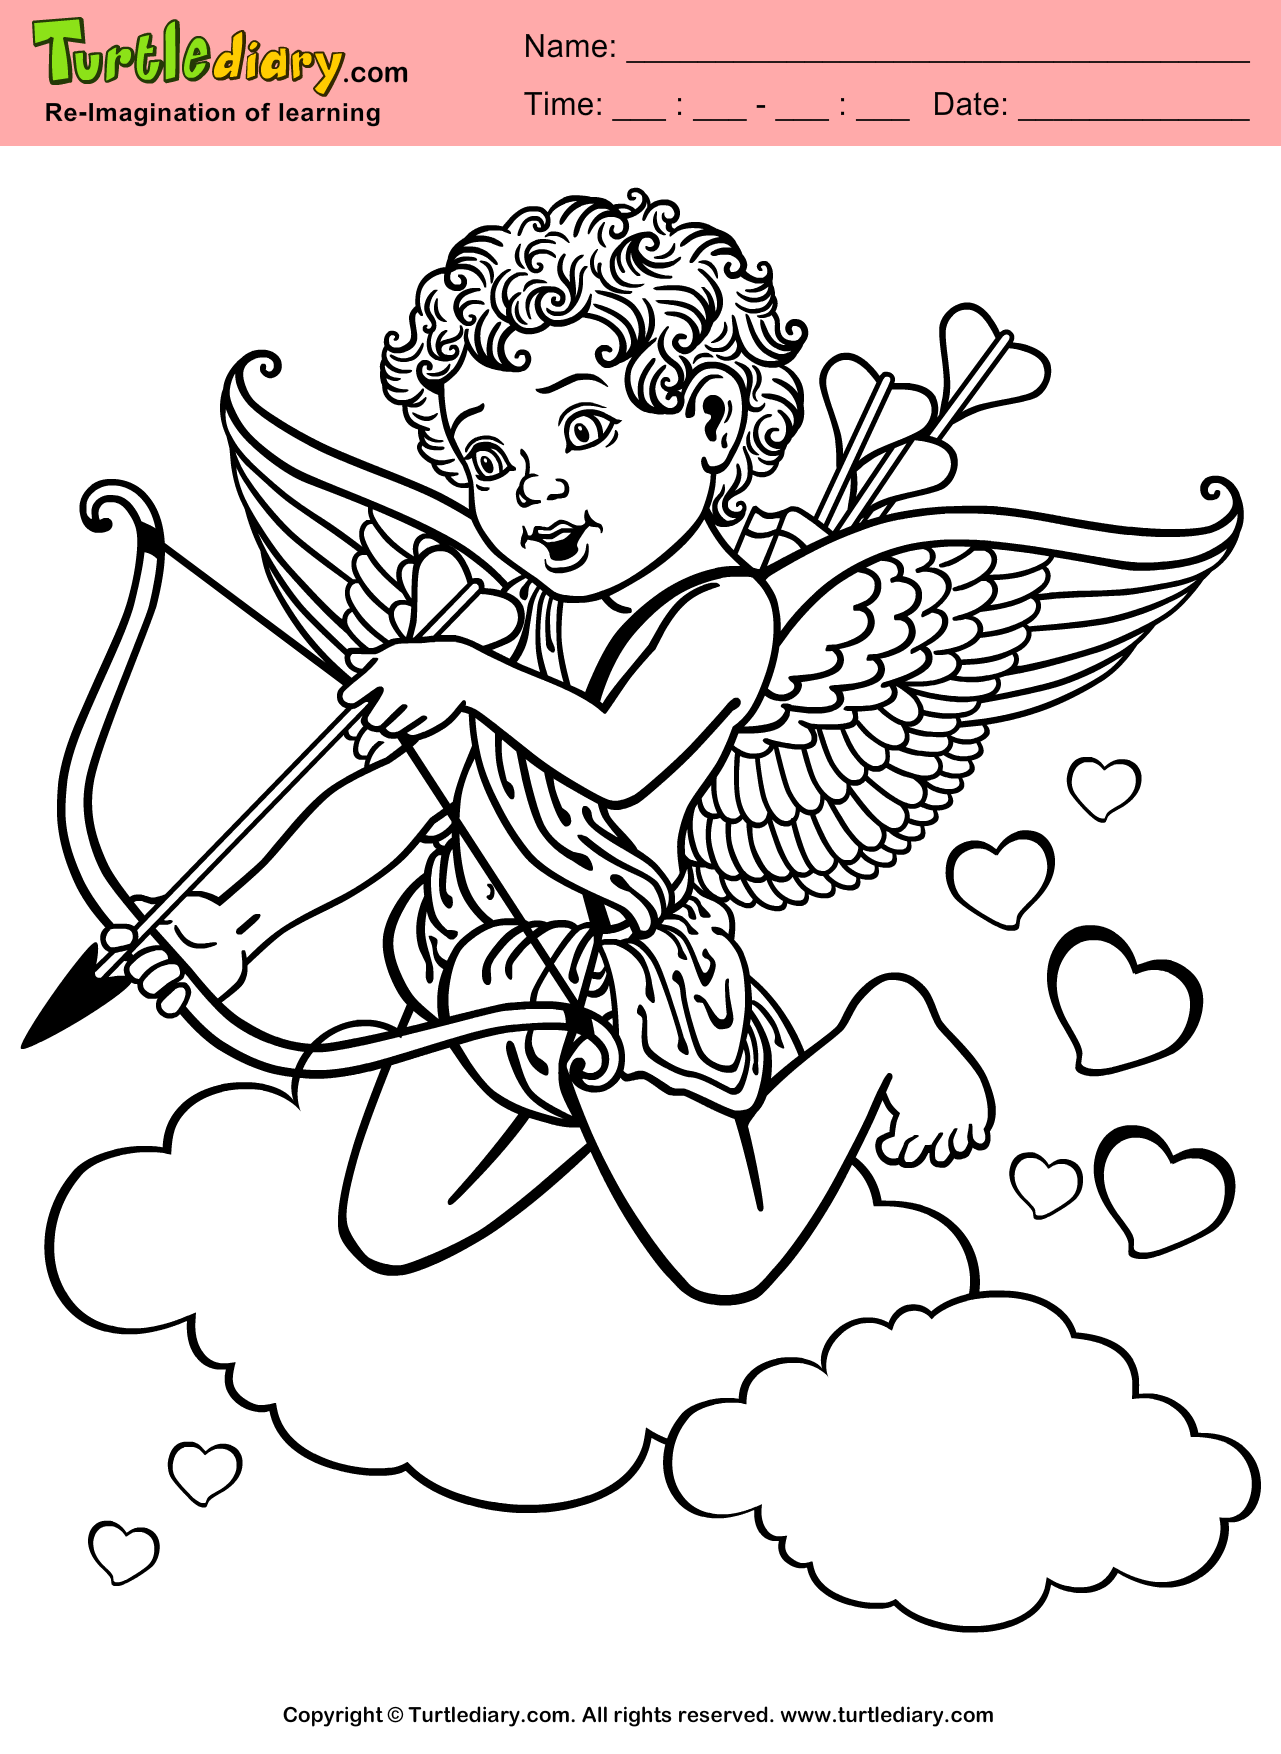 Cupid Coloring Sheet Turtle Diary